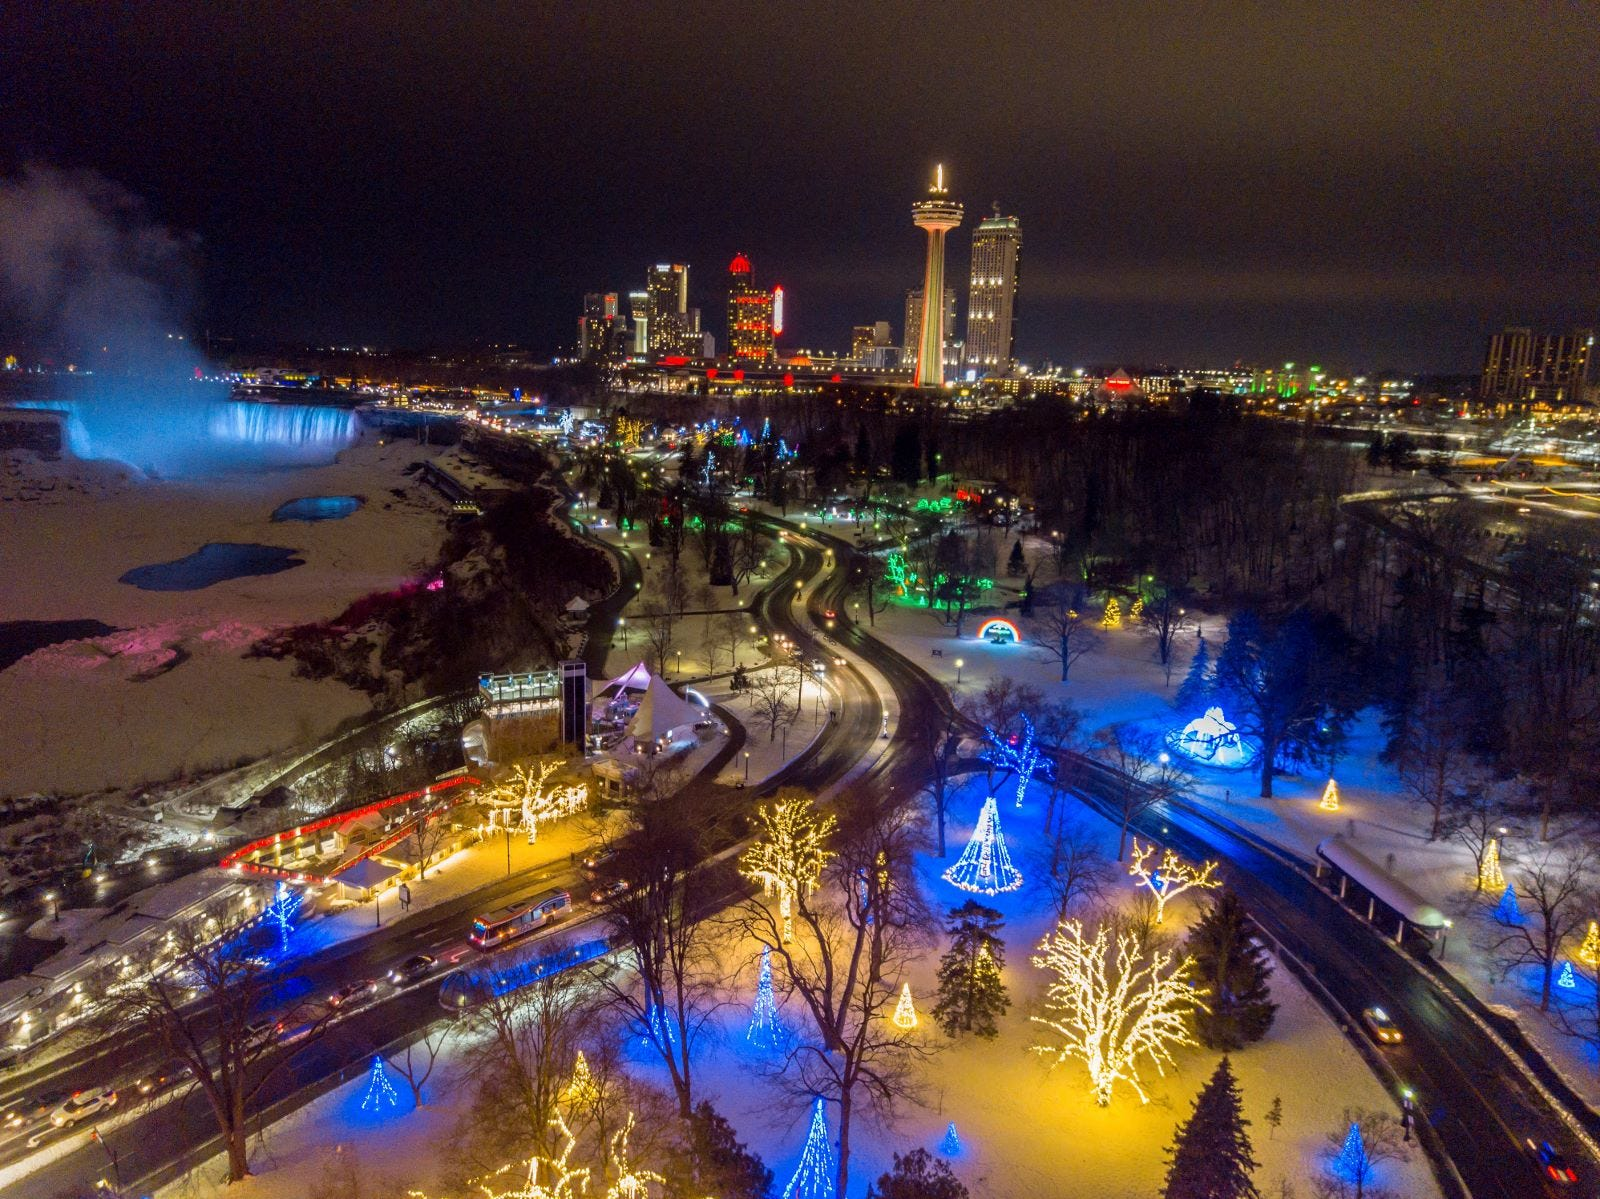 Canada's Winter Festival of Lights starts next month: What to know before you go